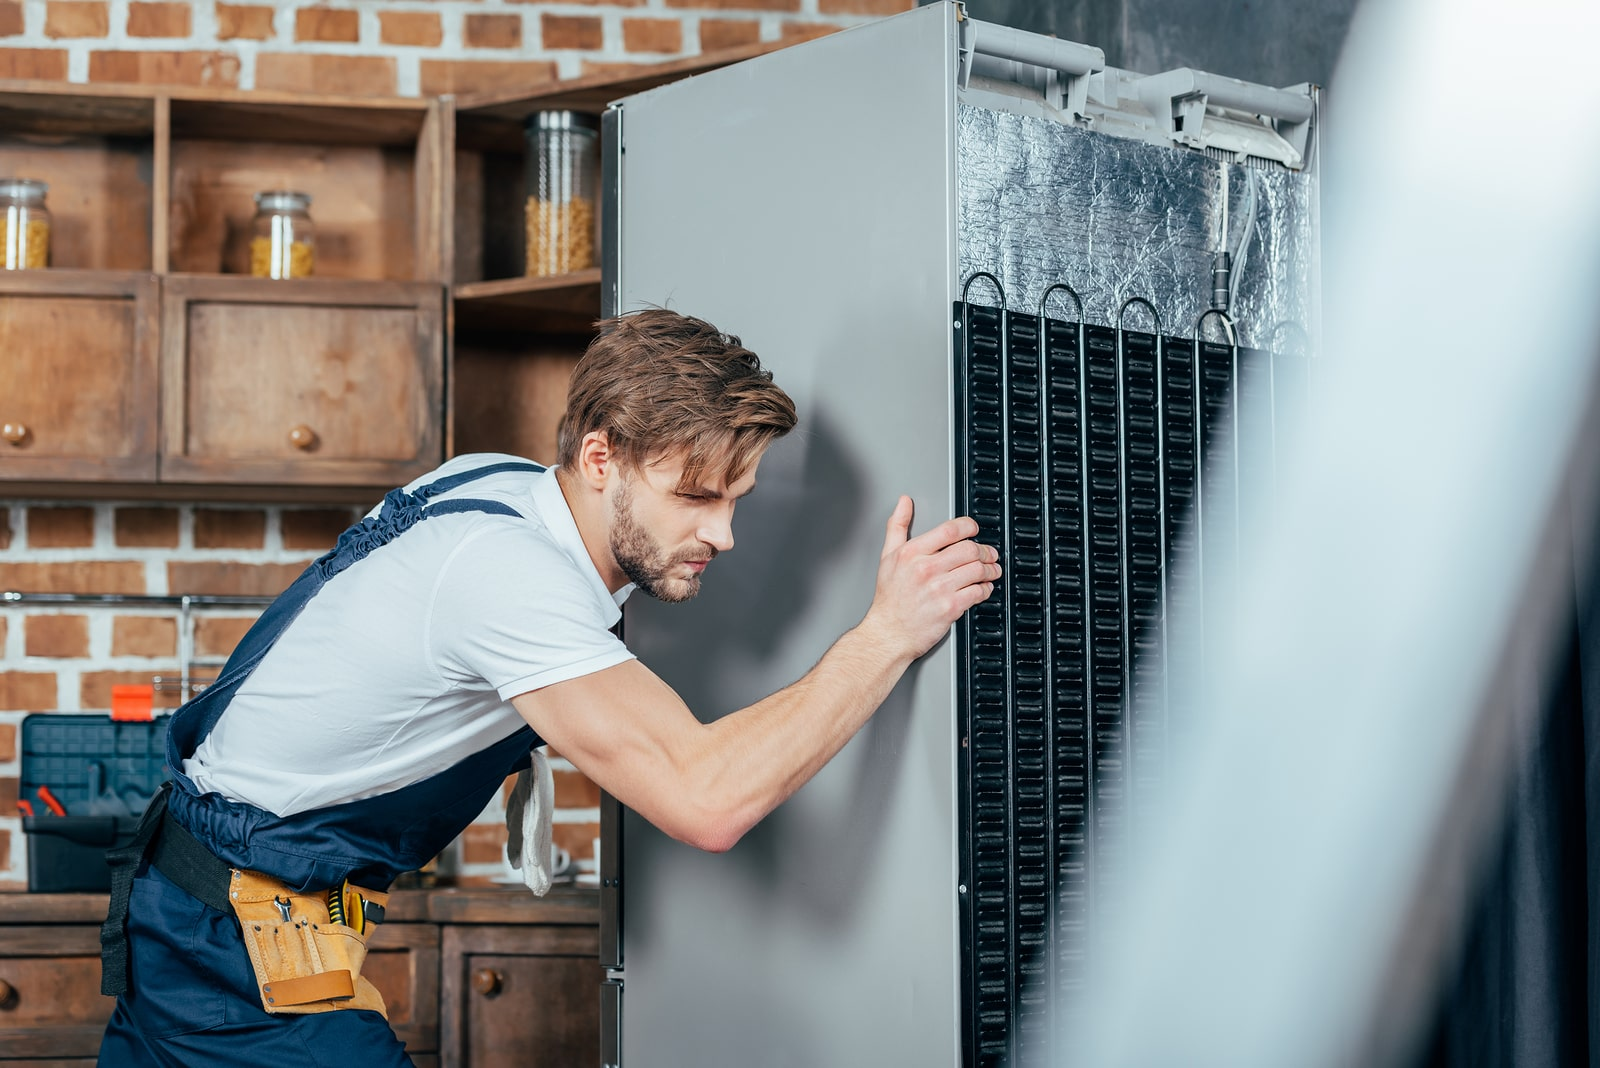 The Do's and Don'ts of Moving and Storing a Refrigerator in Storage